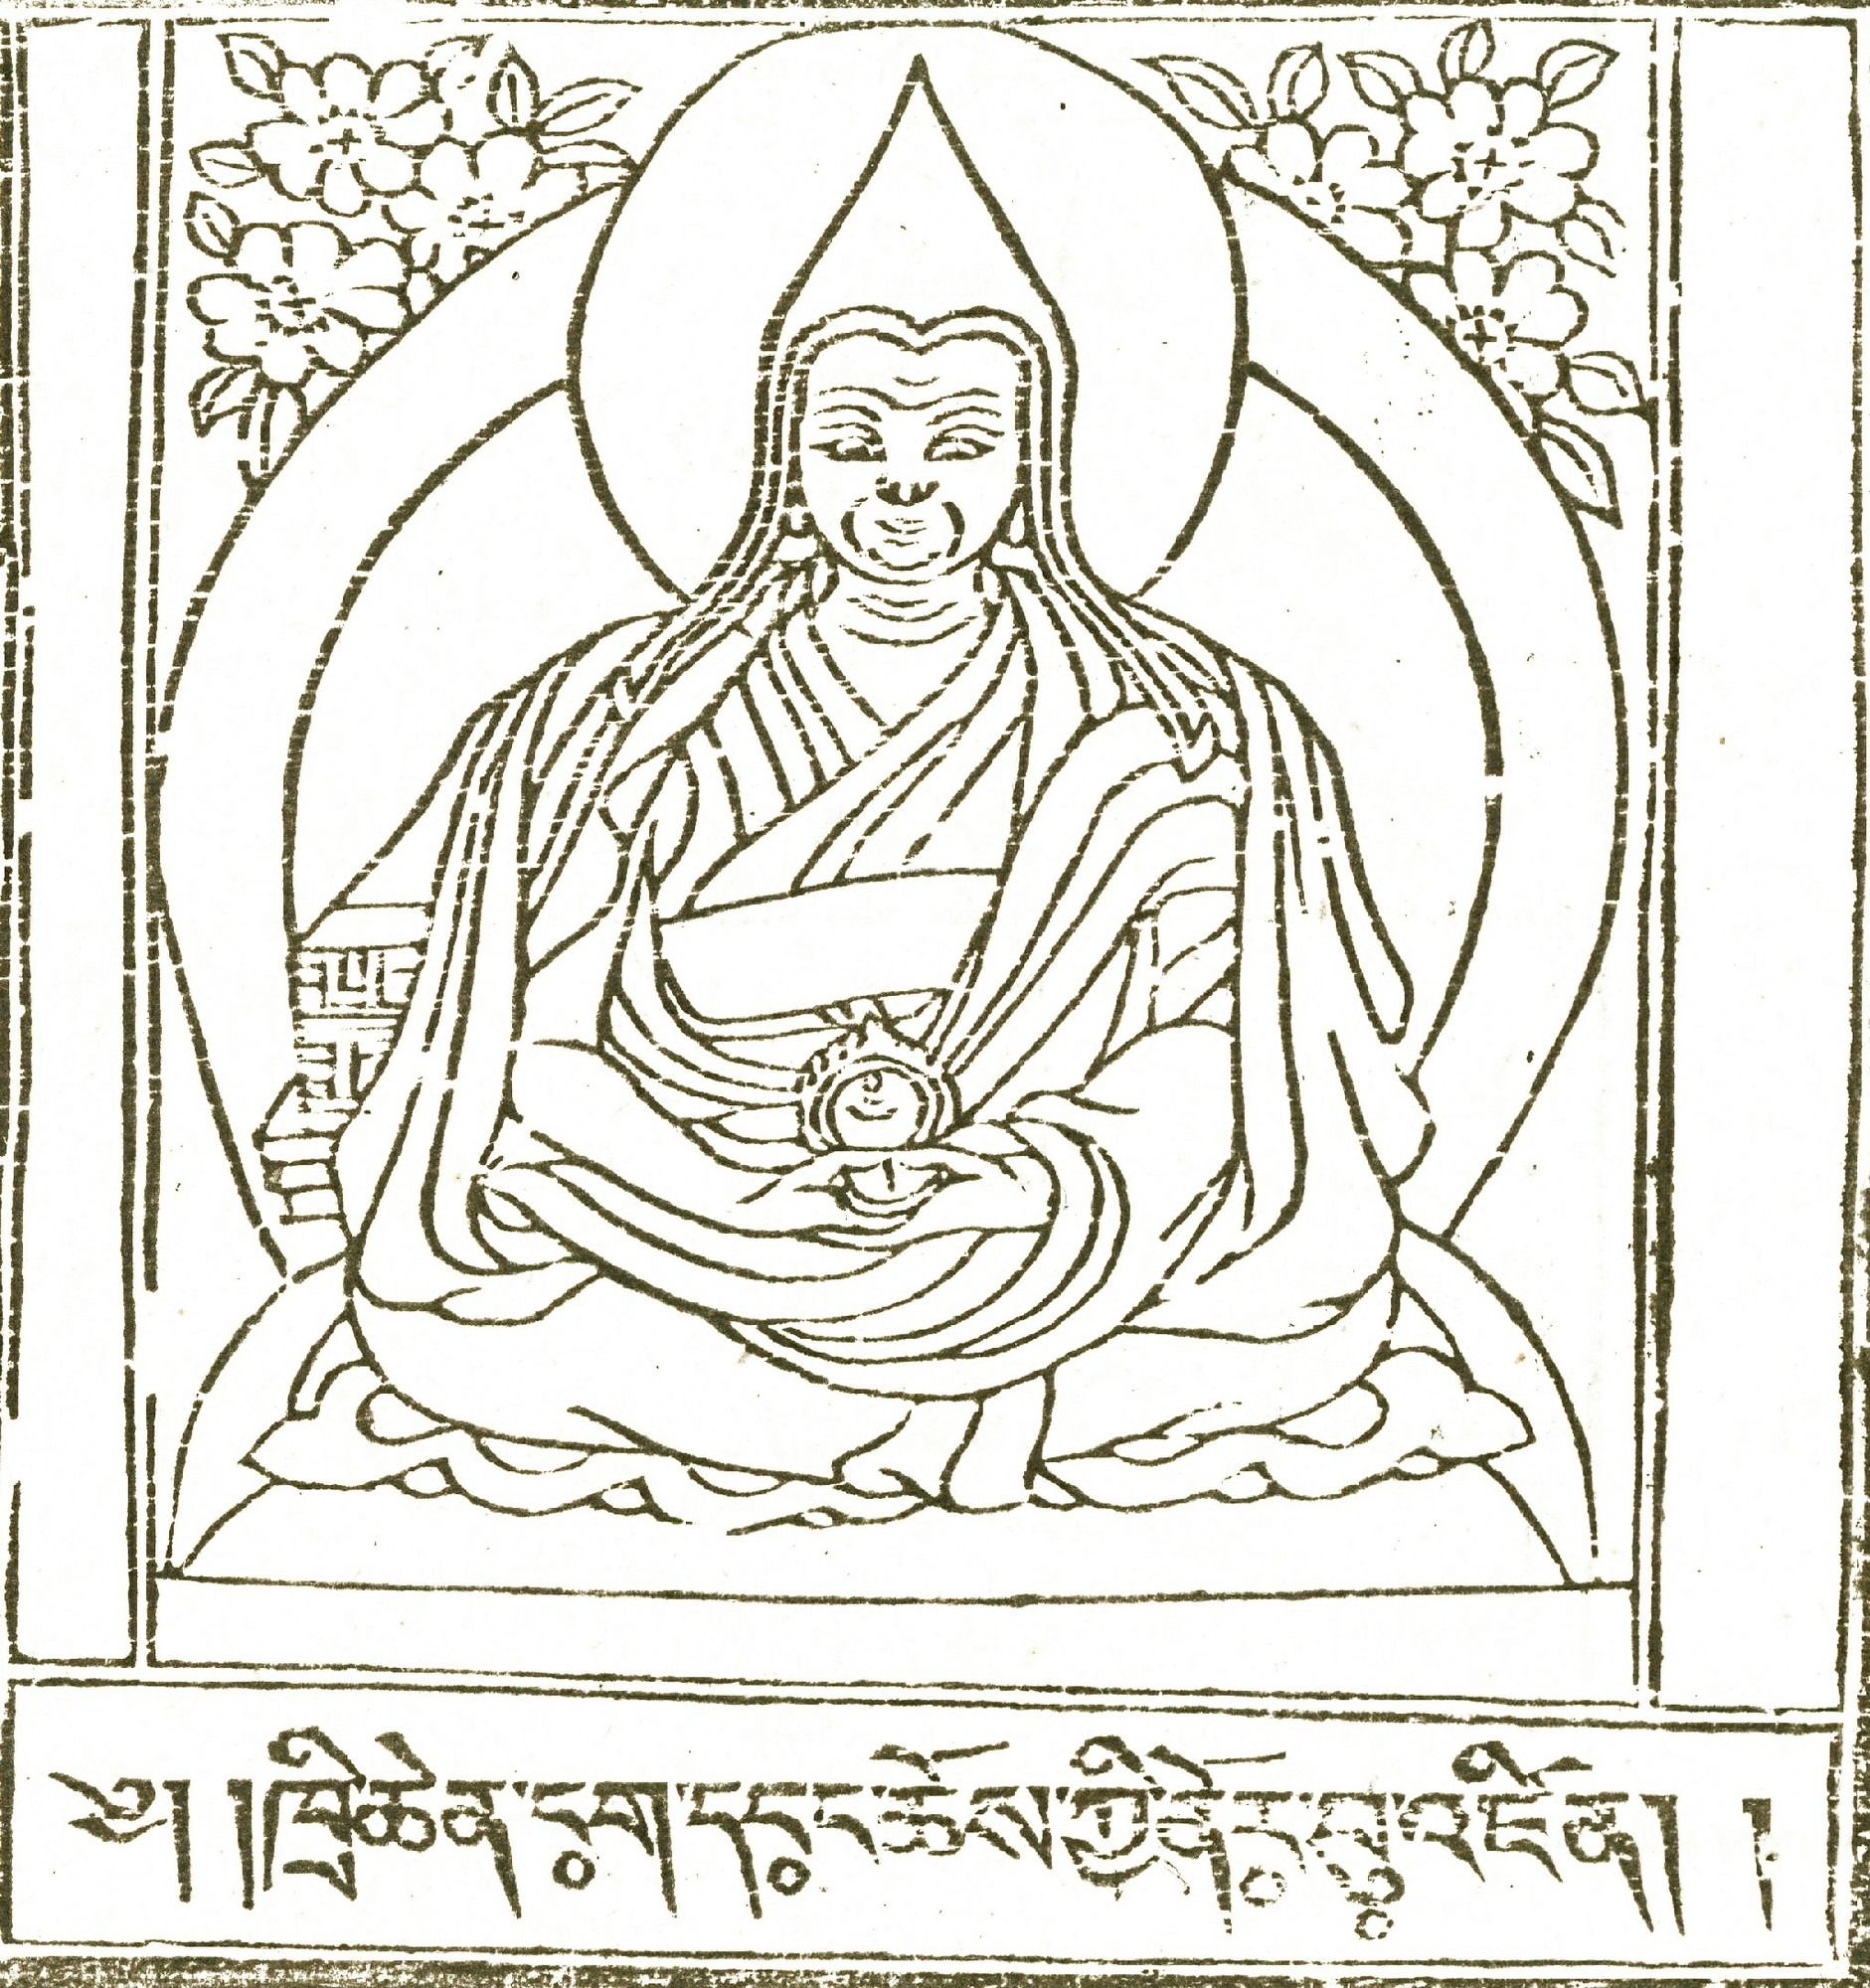 The Eighty-First Ganden Tripa, Ngawang Norbu. Image credit: himalayanart.org. Click on image to enlarge.